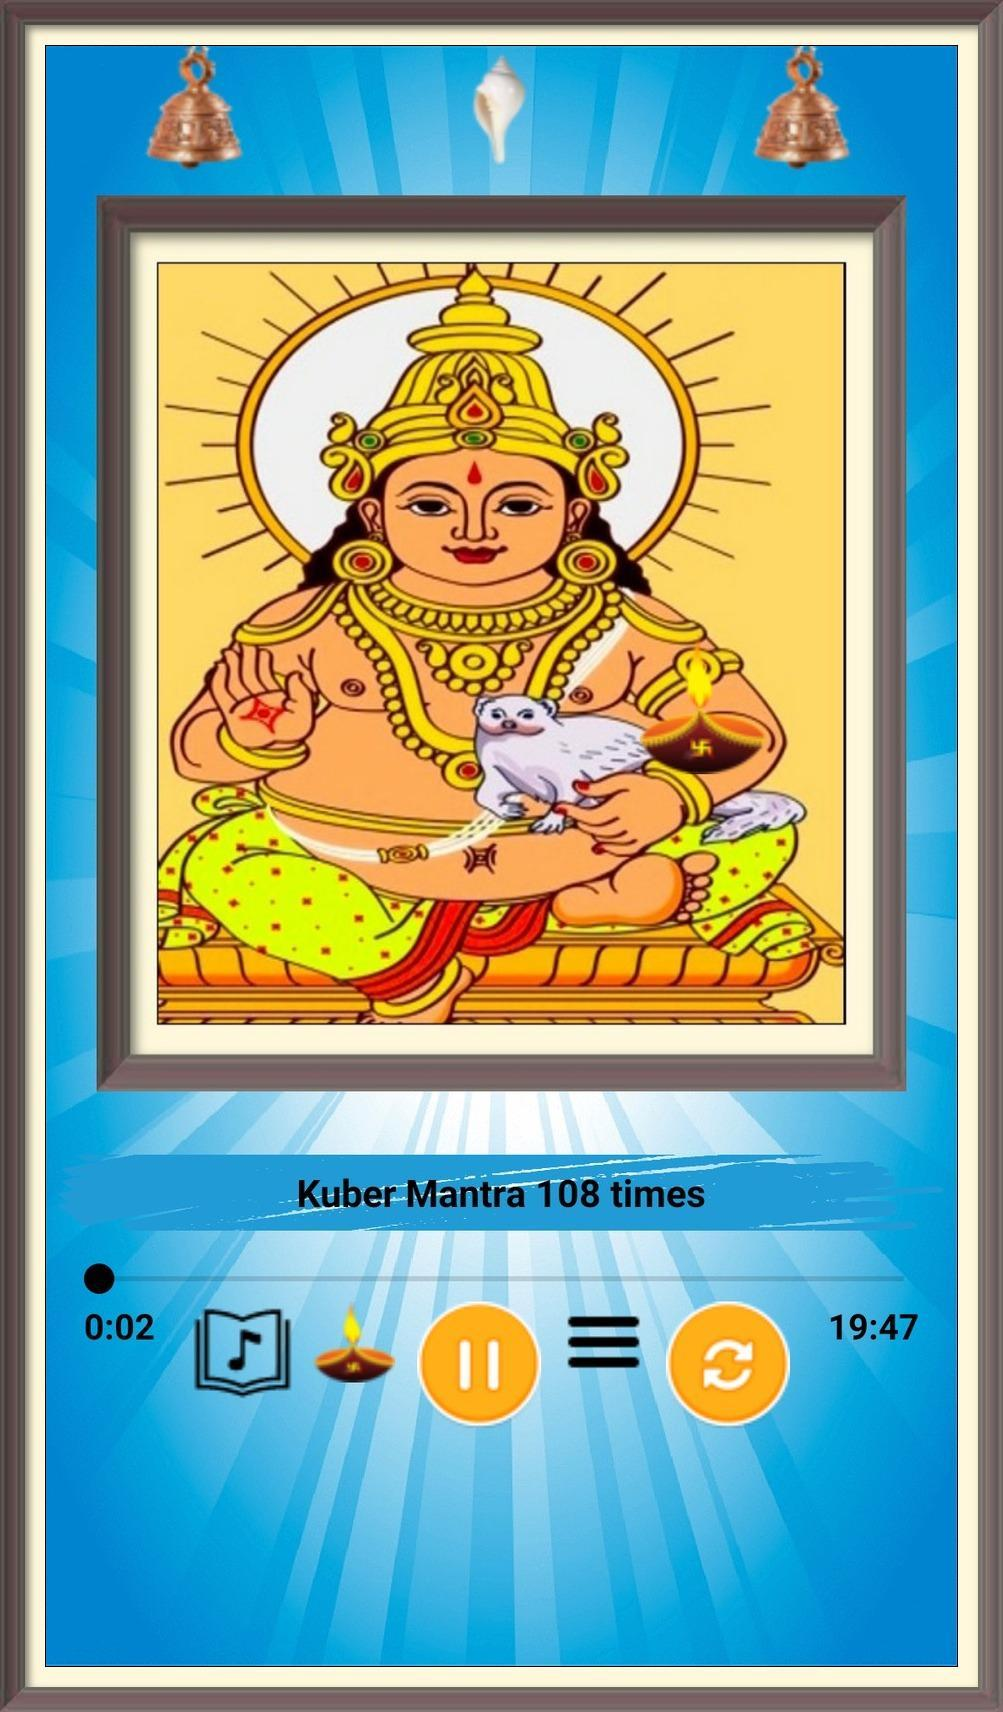 Kuber Mantra for unlimited wealth कुबेर मंत्र for